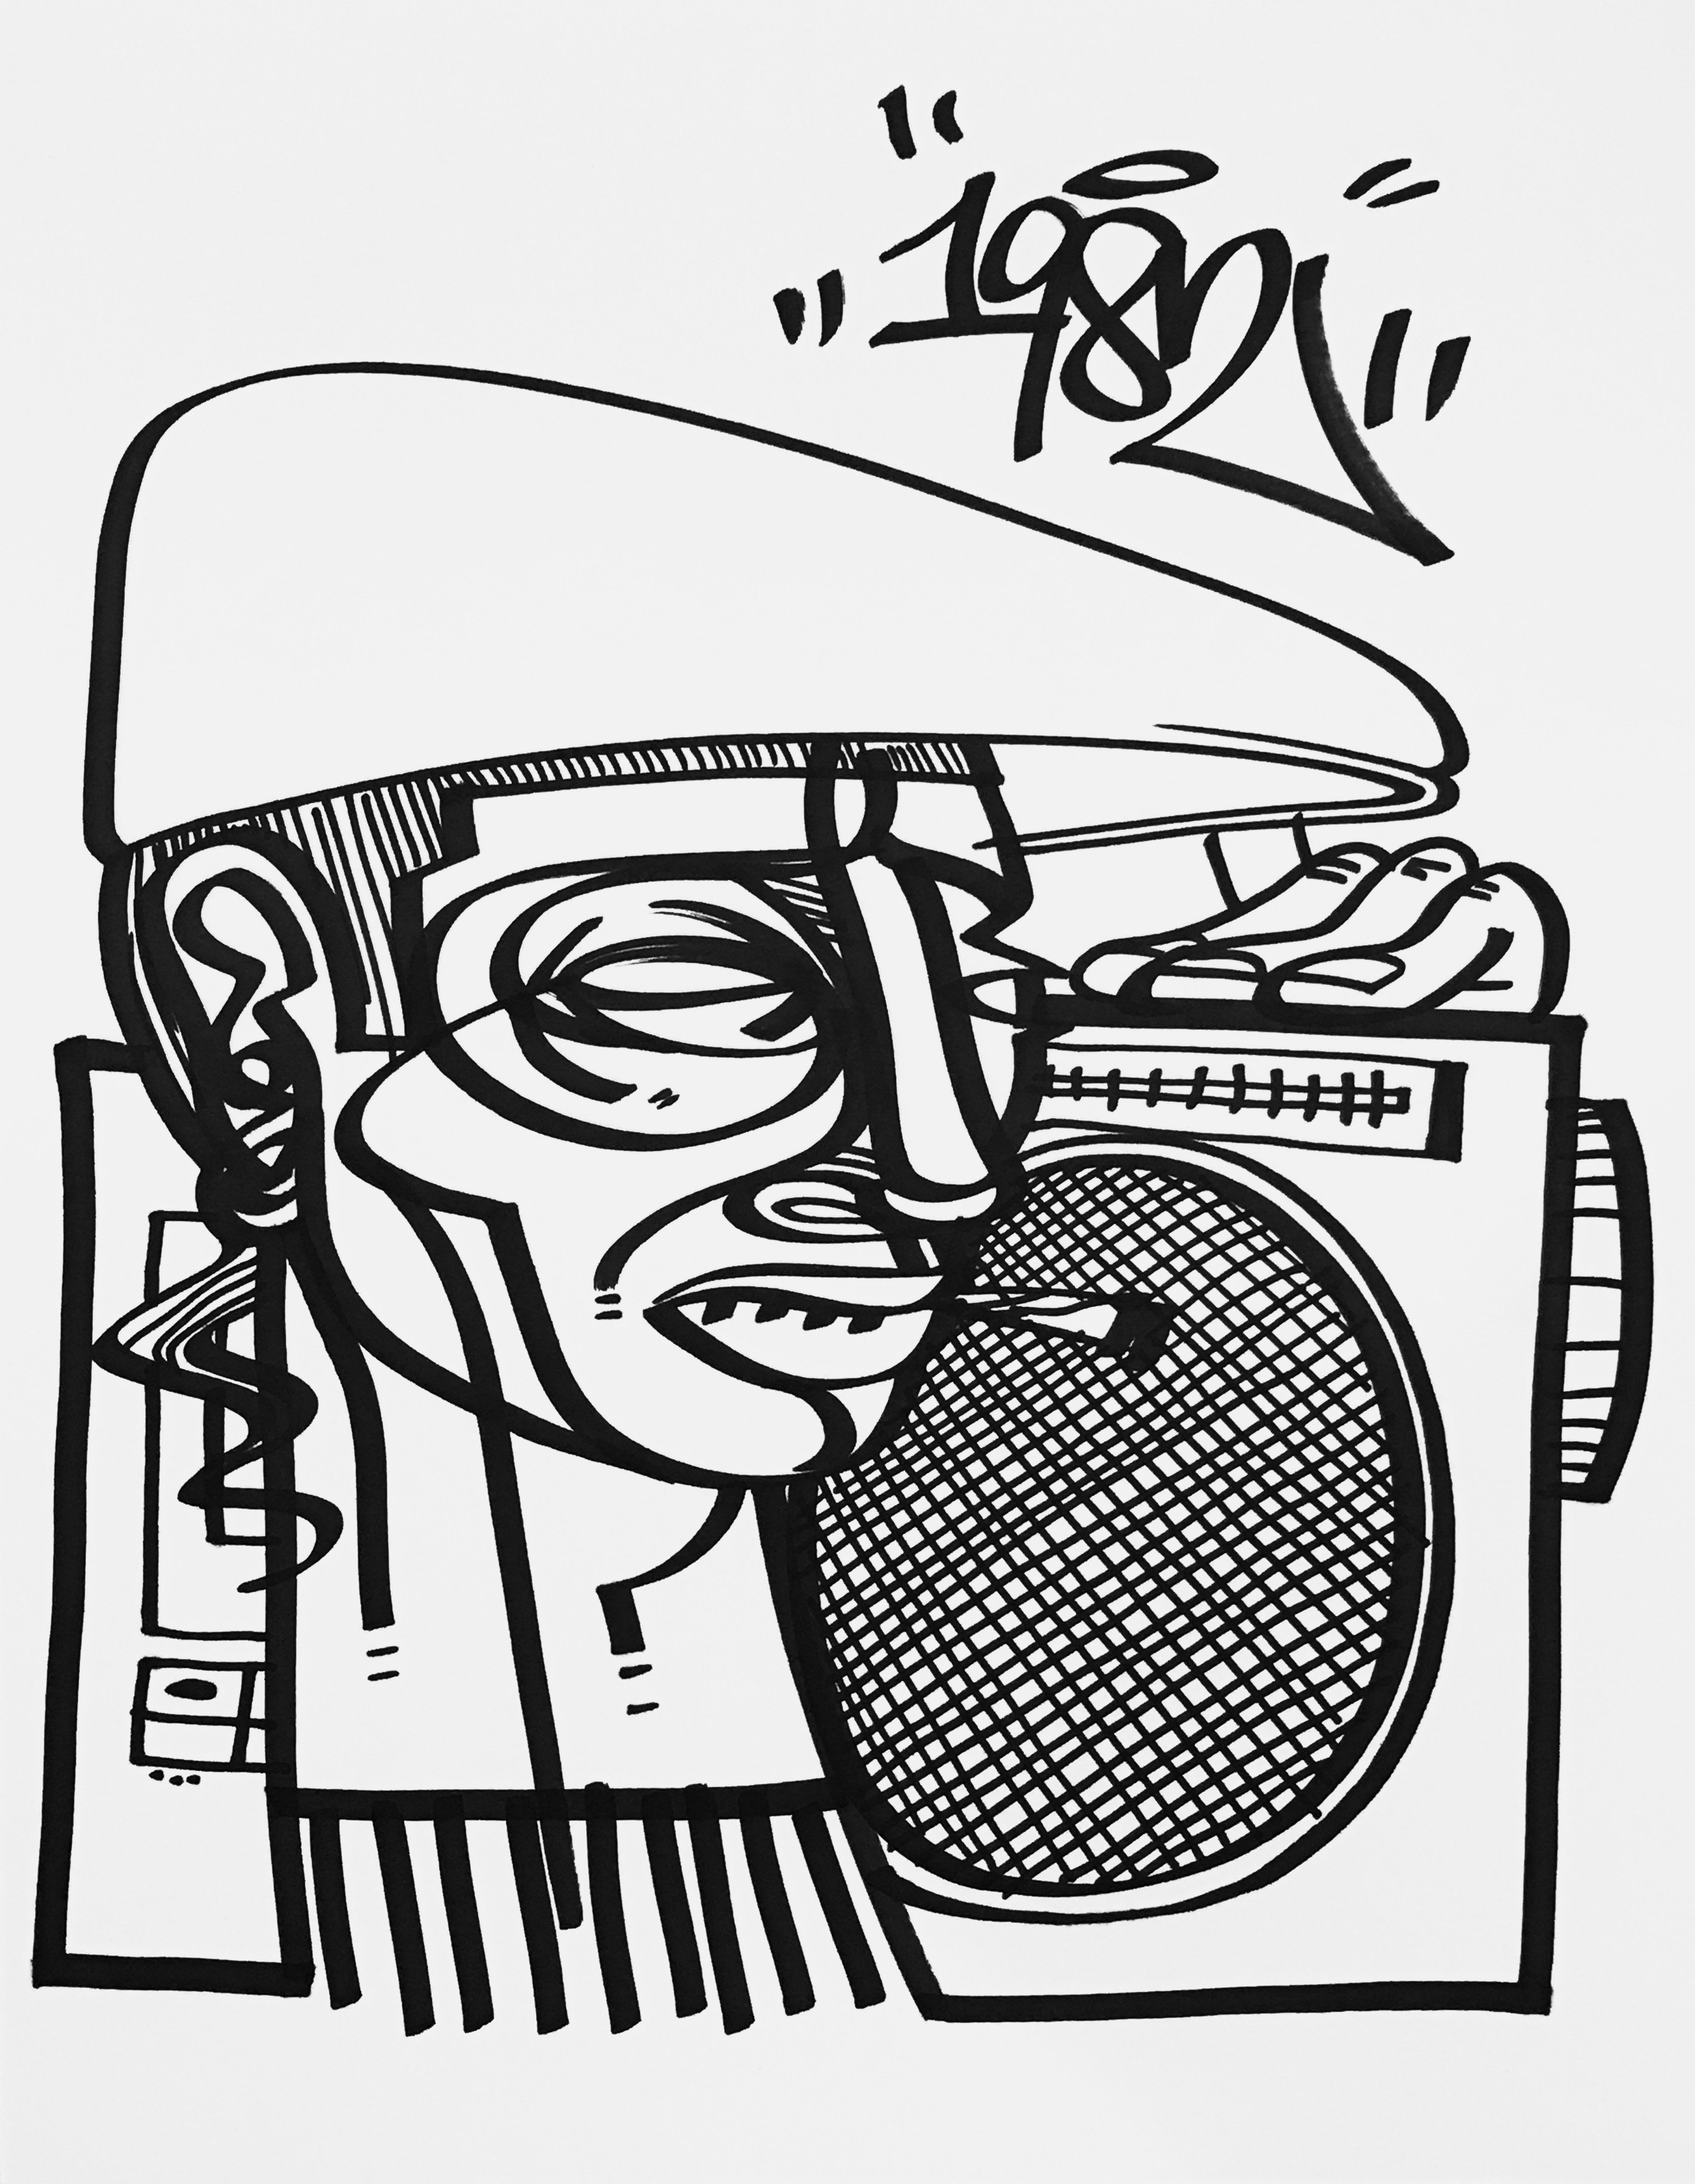 Boombox Drawing at GetDrawings.com | Free for personal use Boombox ...